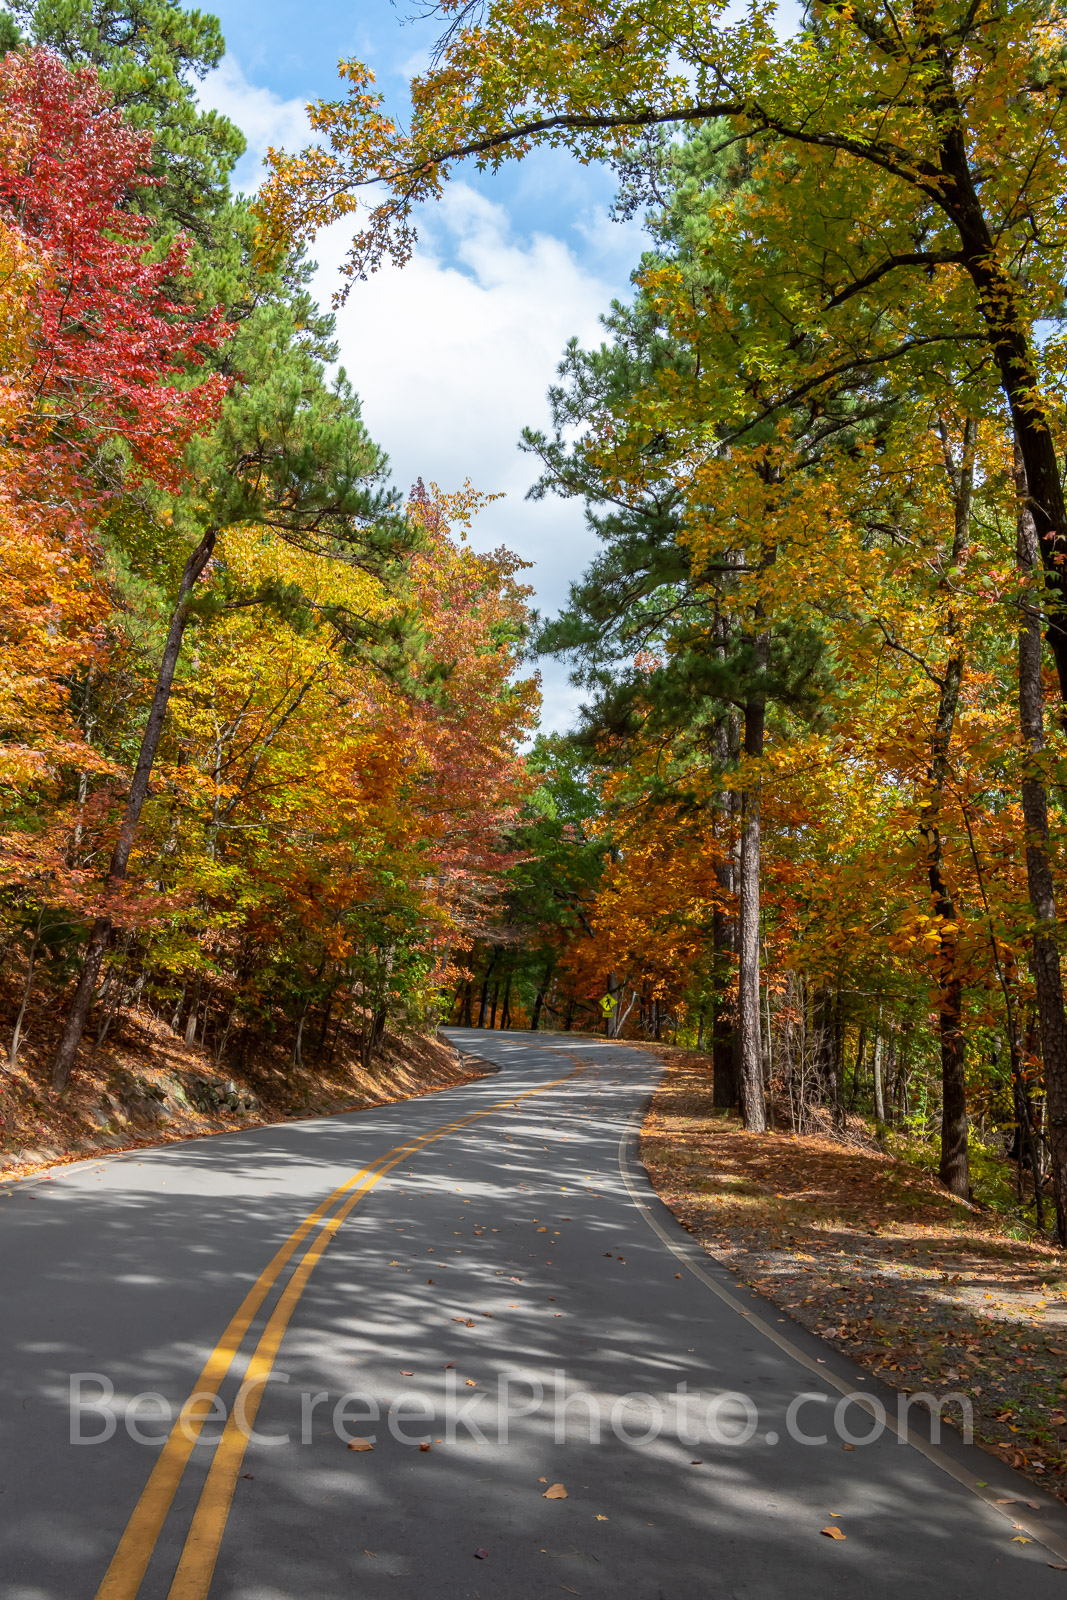 fall, autumn, yellow, orange, pine, cypress, trees, shades, yellow, orange, rust, colors, fall color, Tower Mountain, road, arkansas, national, forest, october, curves, sun light, tree line road, pin, photo